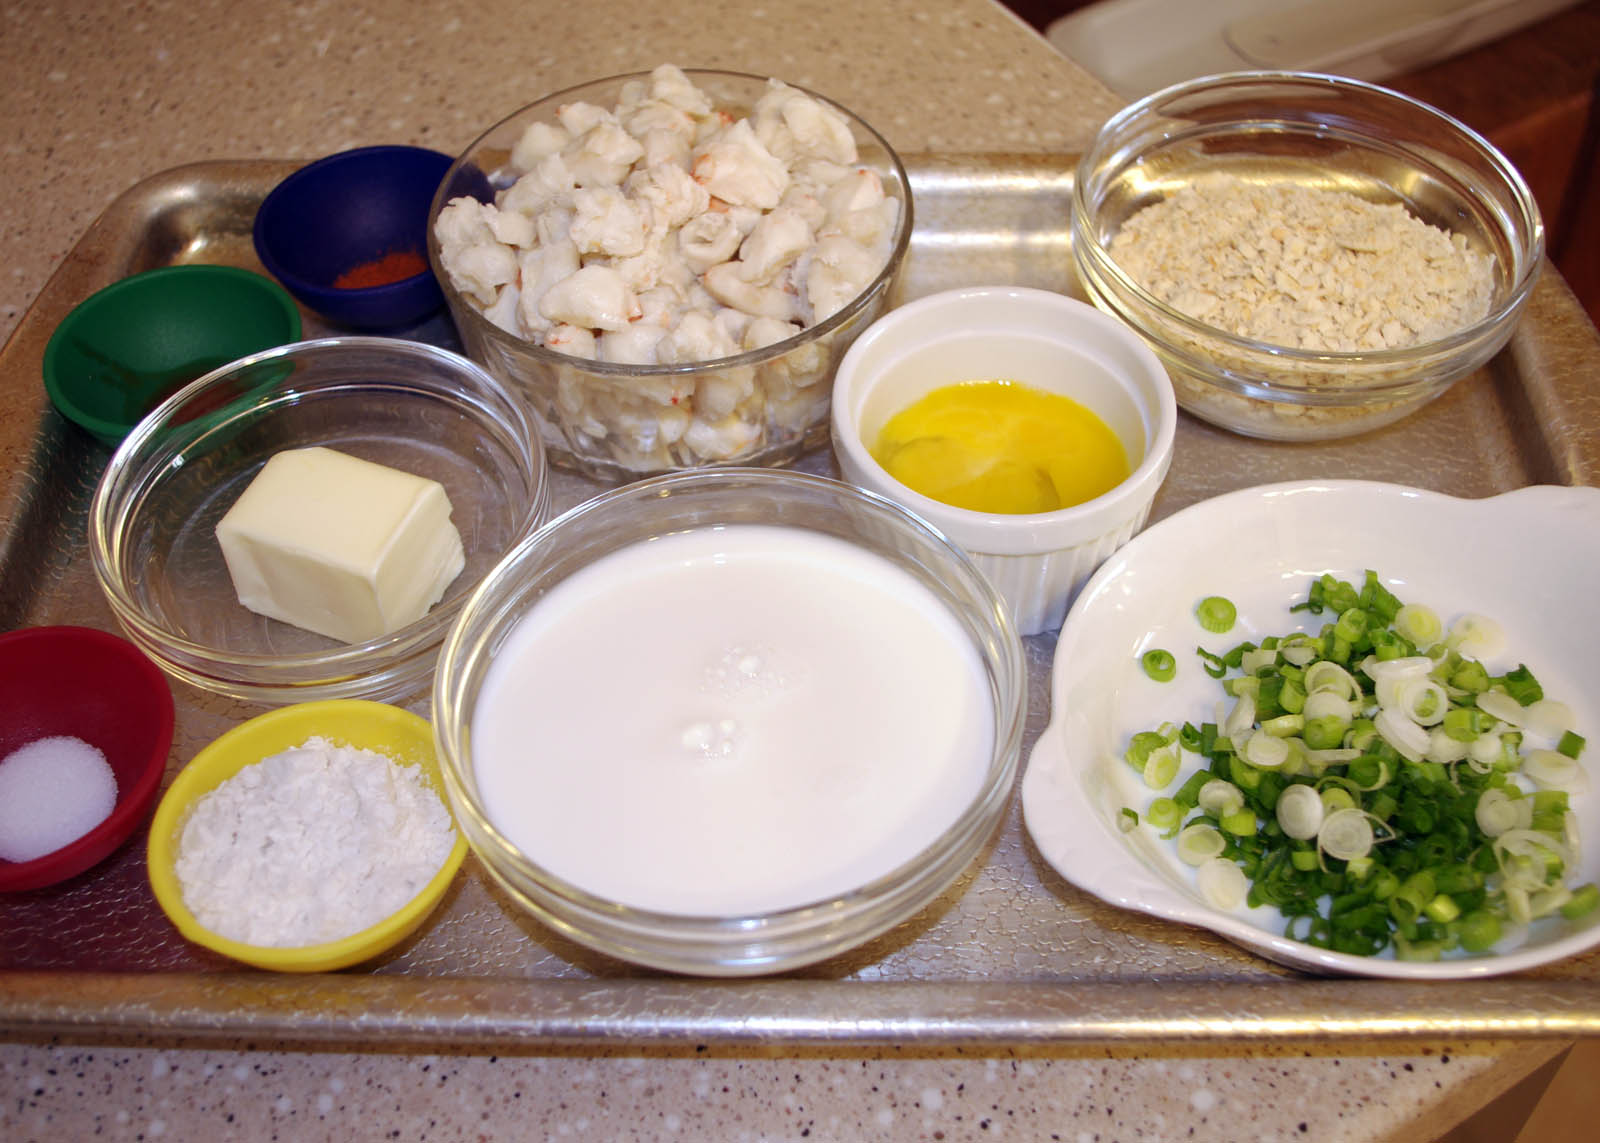 Mise En Place | Everything In Its Place